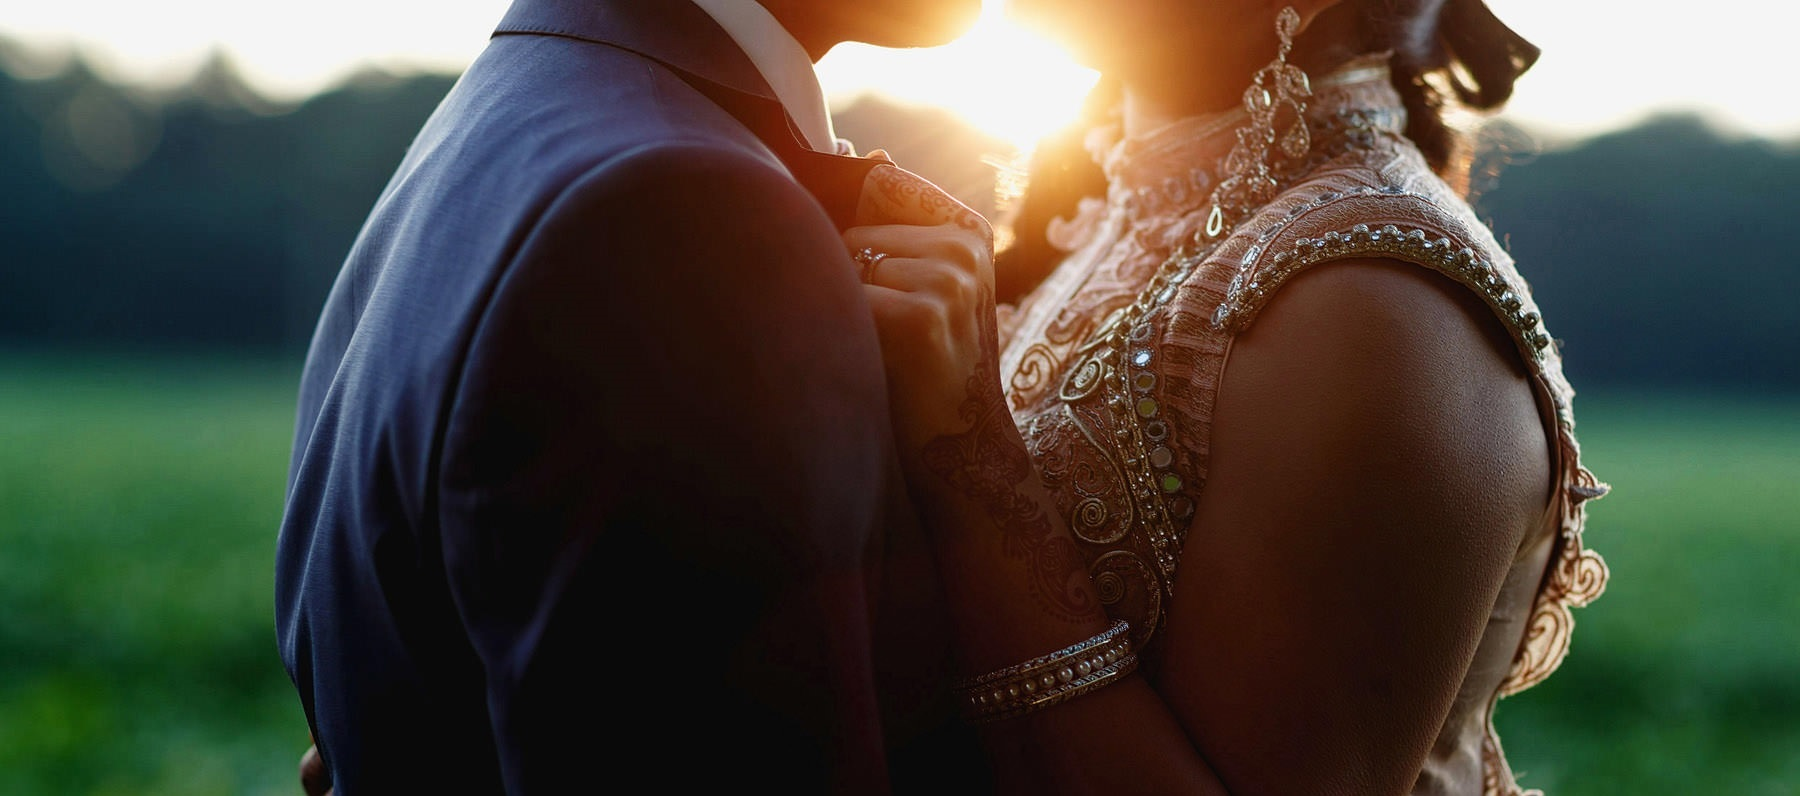 arp-films-indian-wedding-photography-long-island-ny-new-jersey-nj-pennsylvania-pa-2